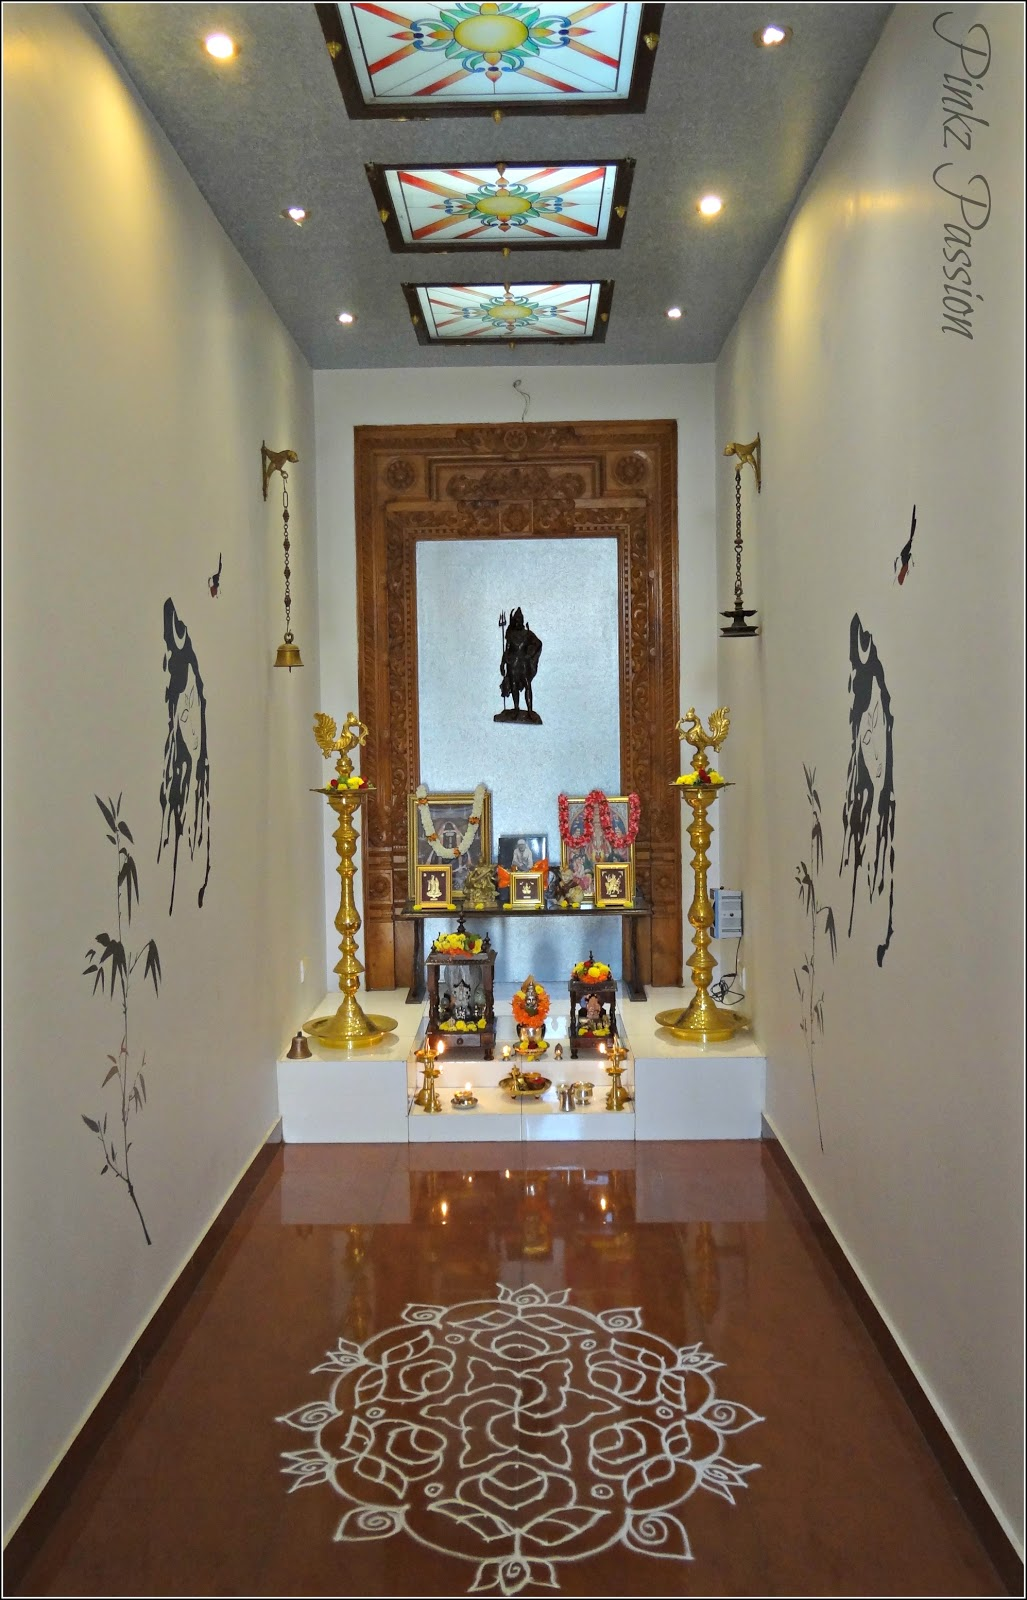 Pooja Room Design For Home: Pinkz Passion : A Home With Grace And History (Home Tour